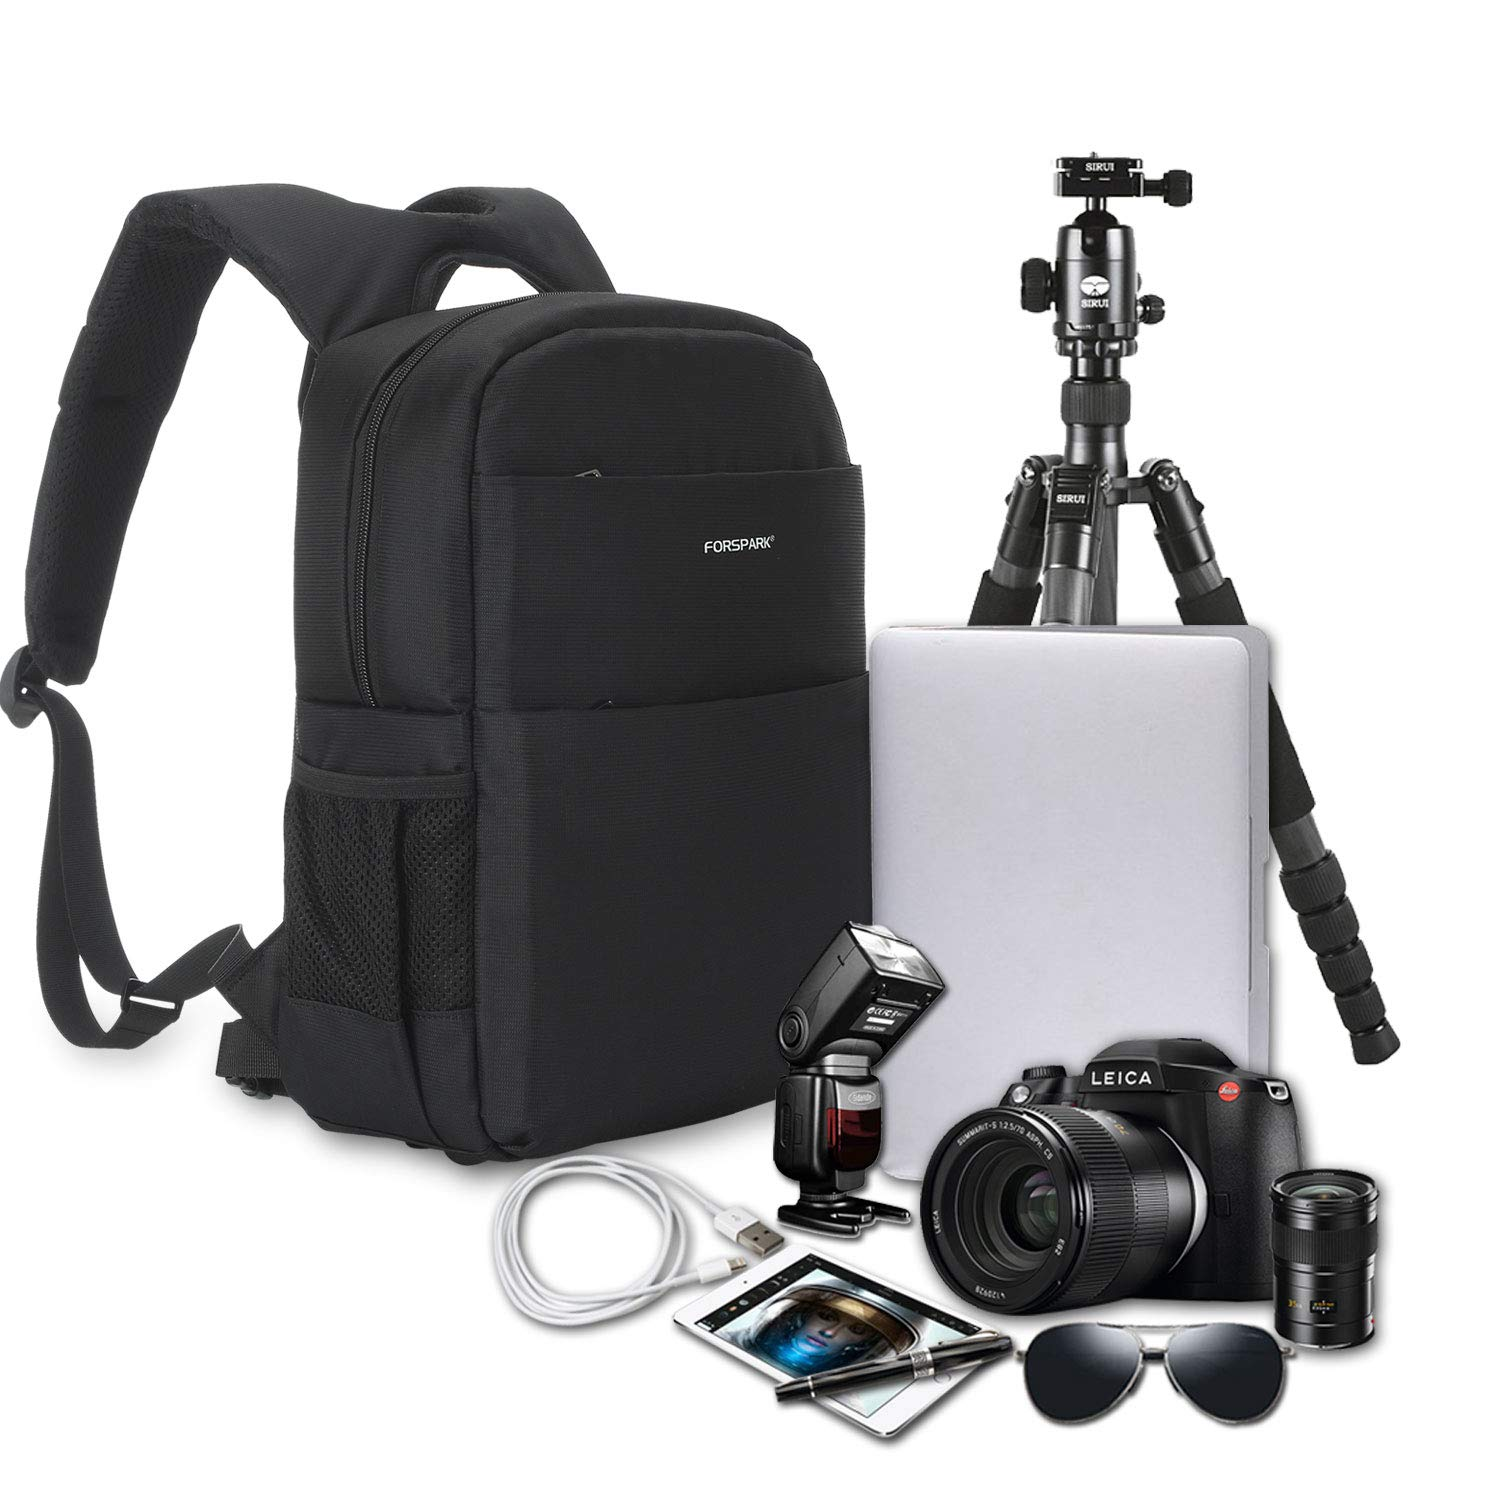 FORSPARK Camera Bag Backpack for DSLR Cameras, Camera Backpack with Waterproof Rain Cover